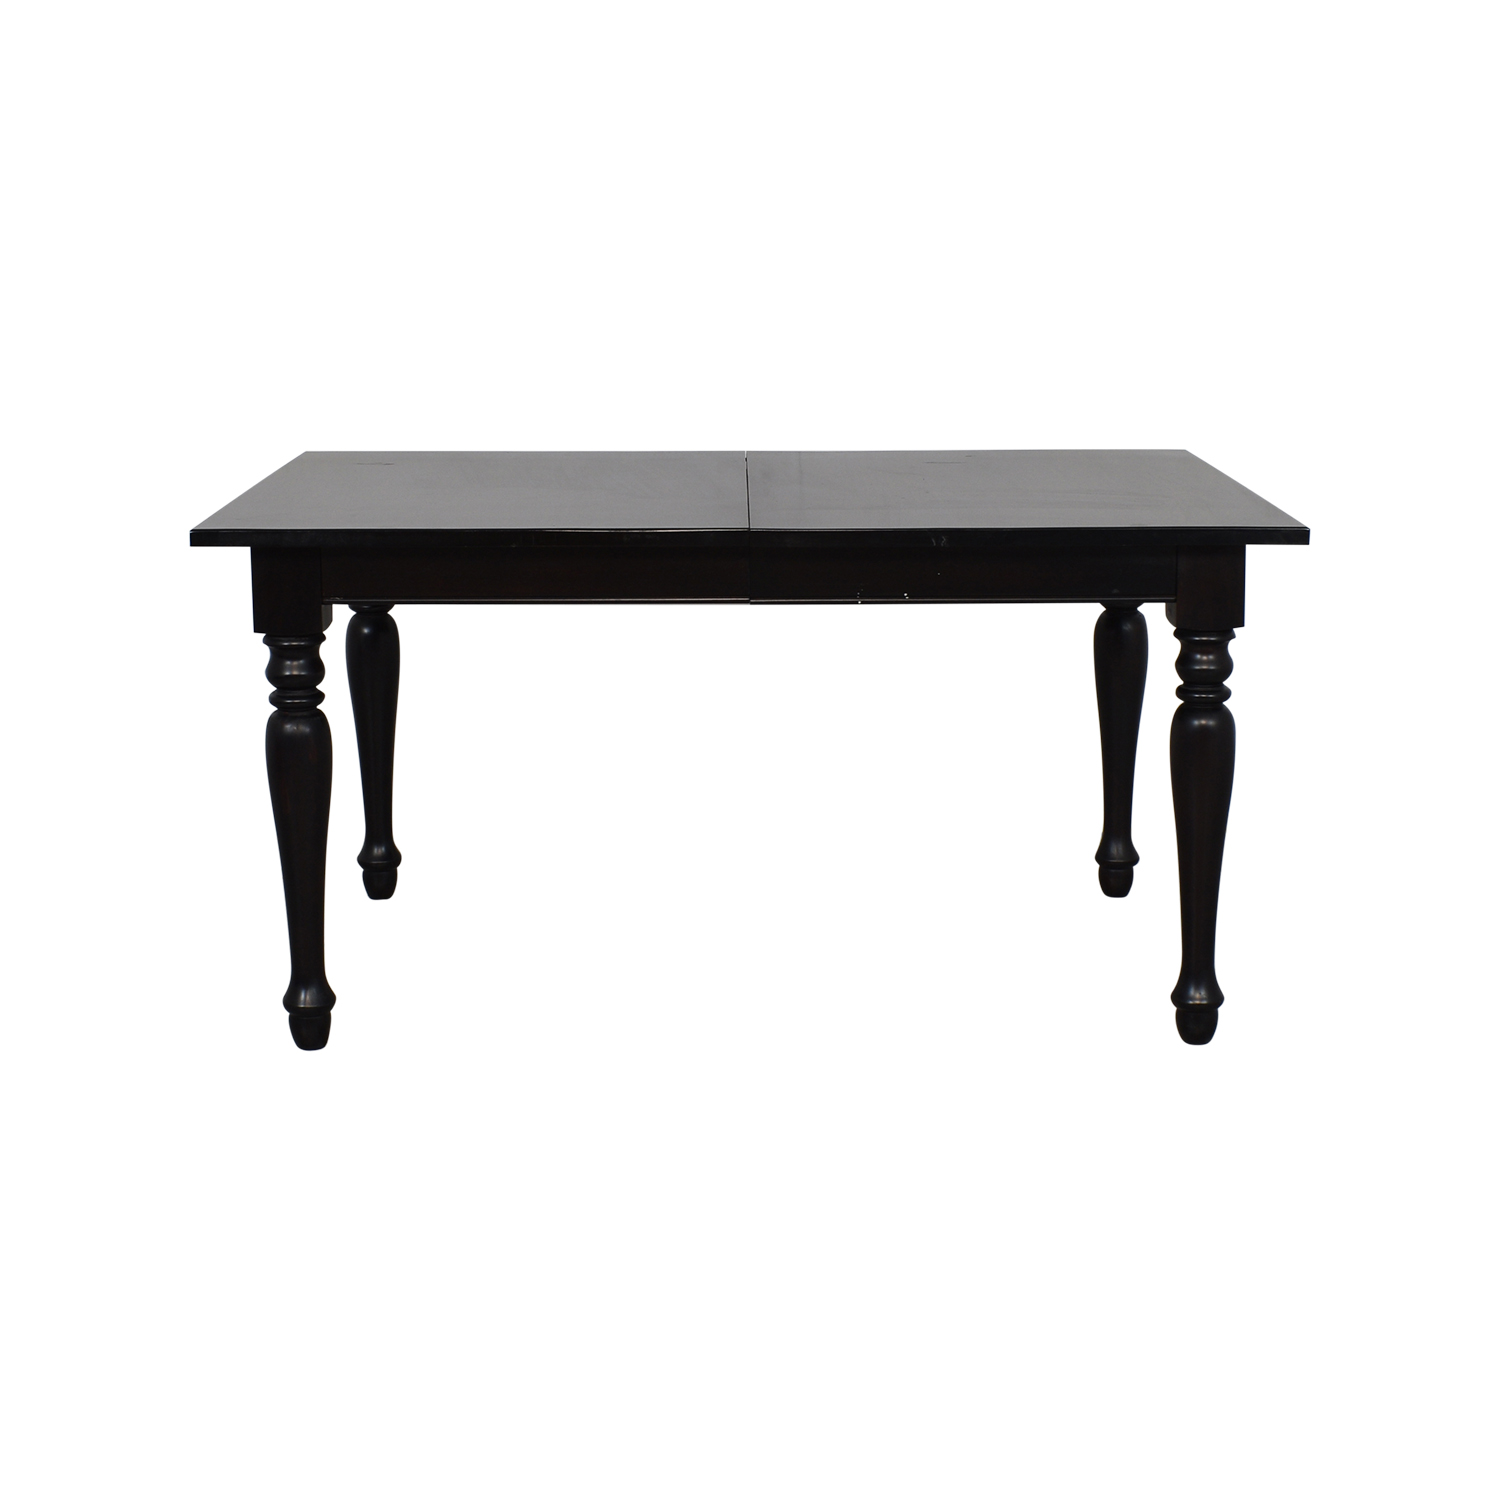 Crate & Barrel Crate & Barrel Extendable Dining Table second hand